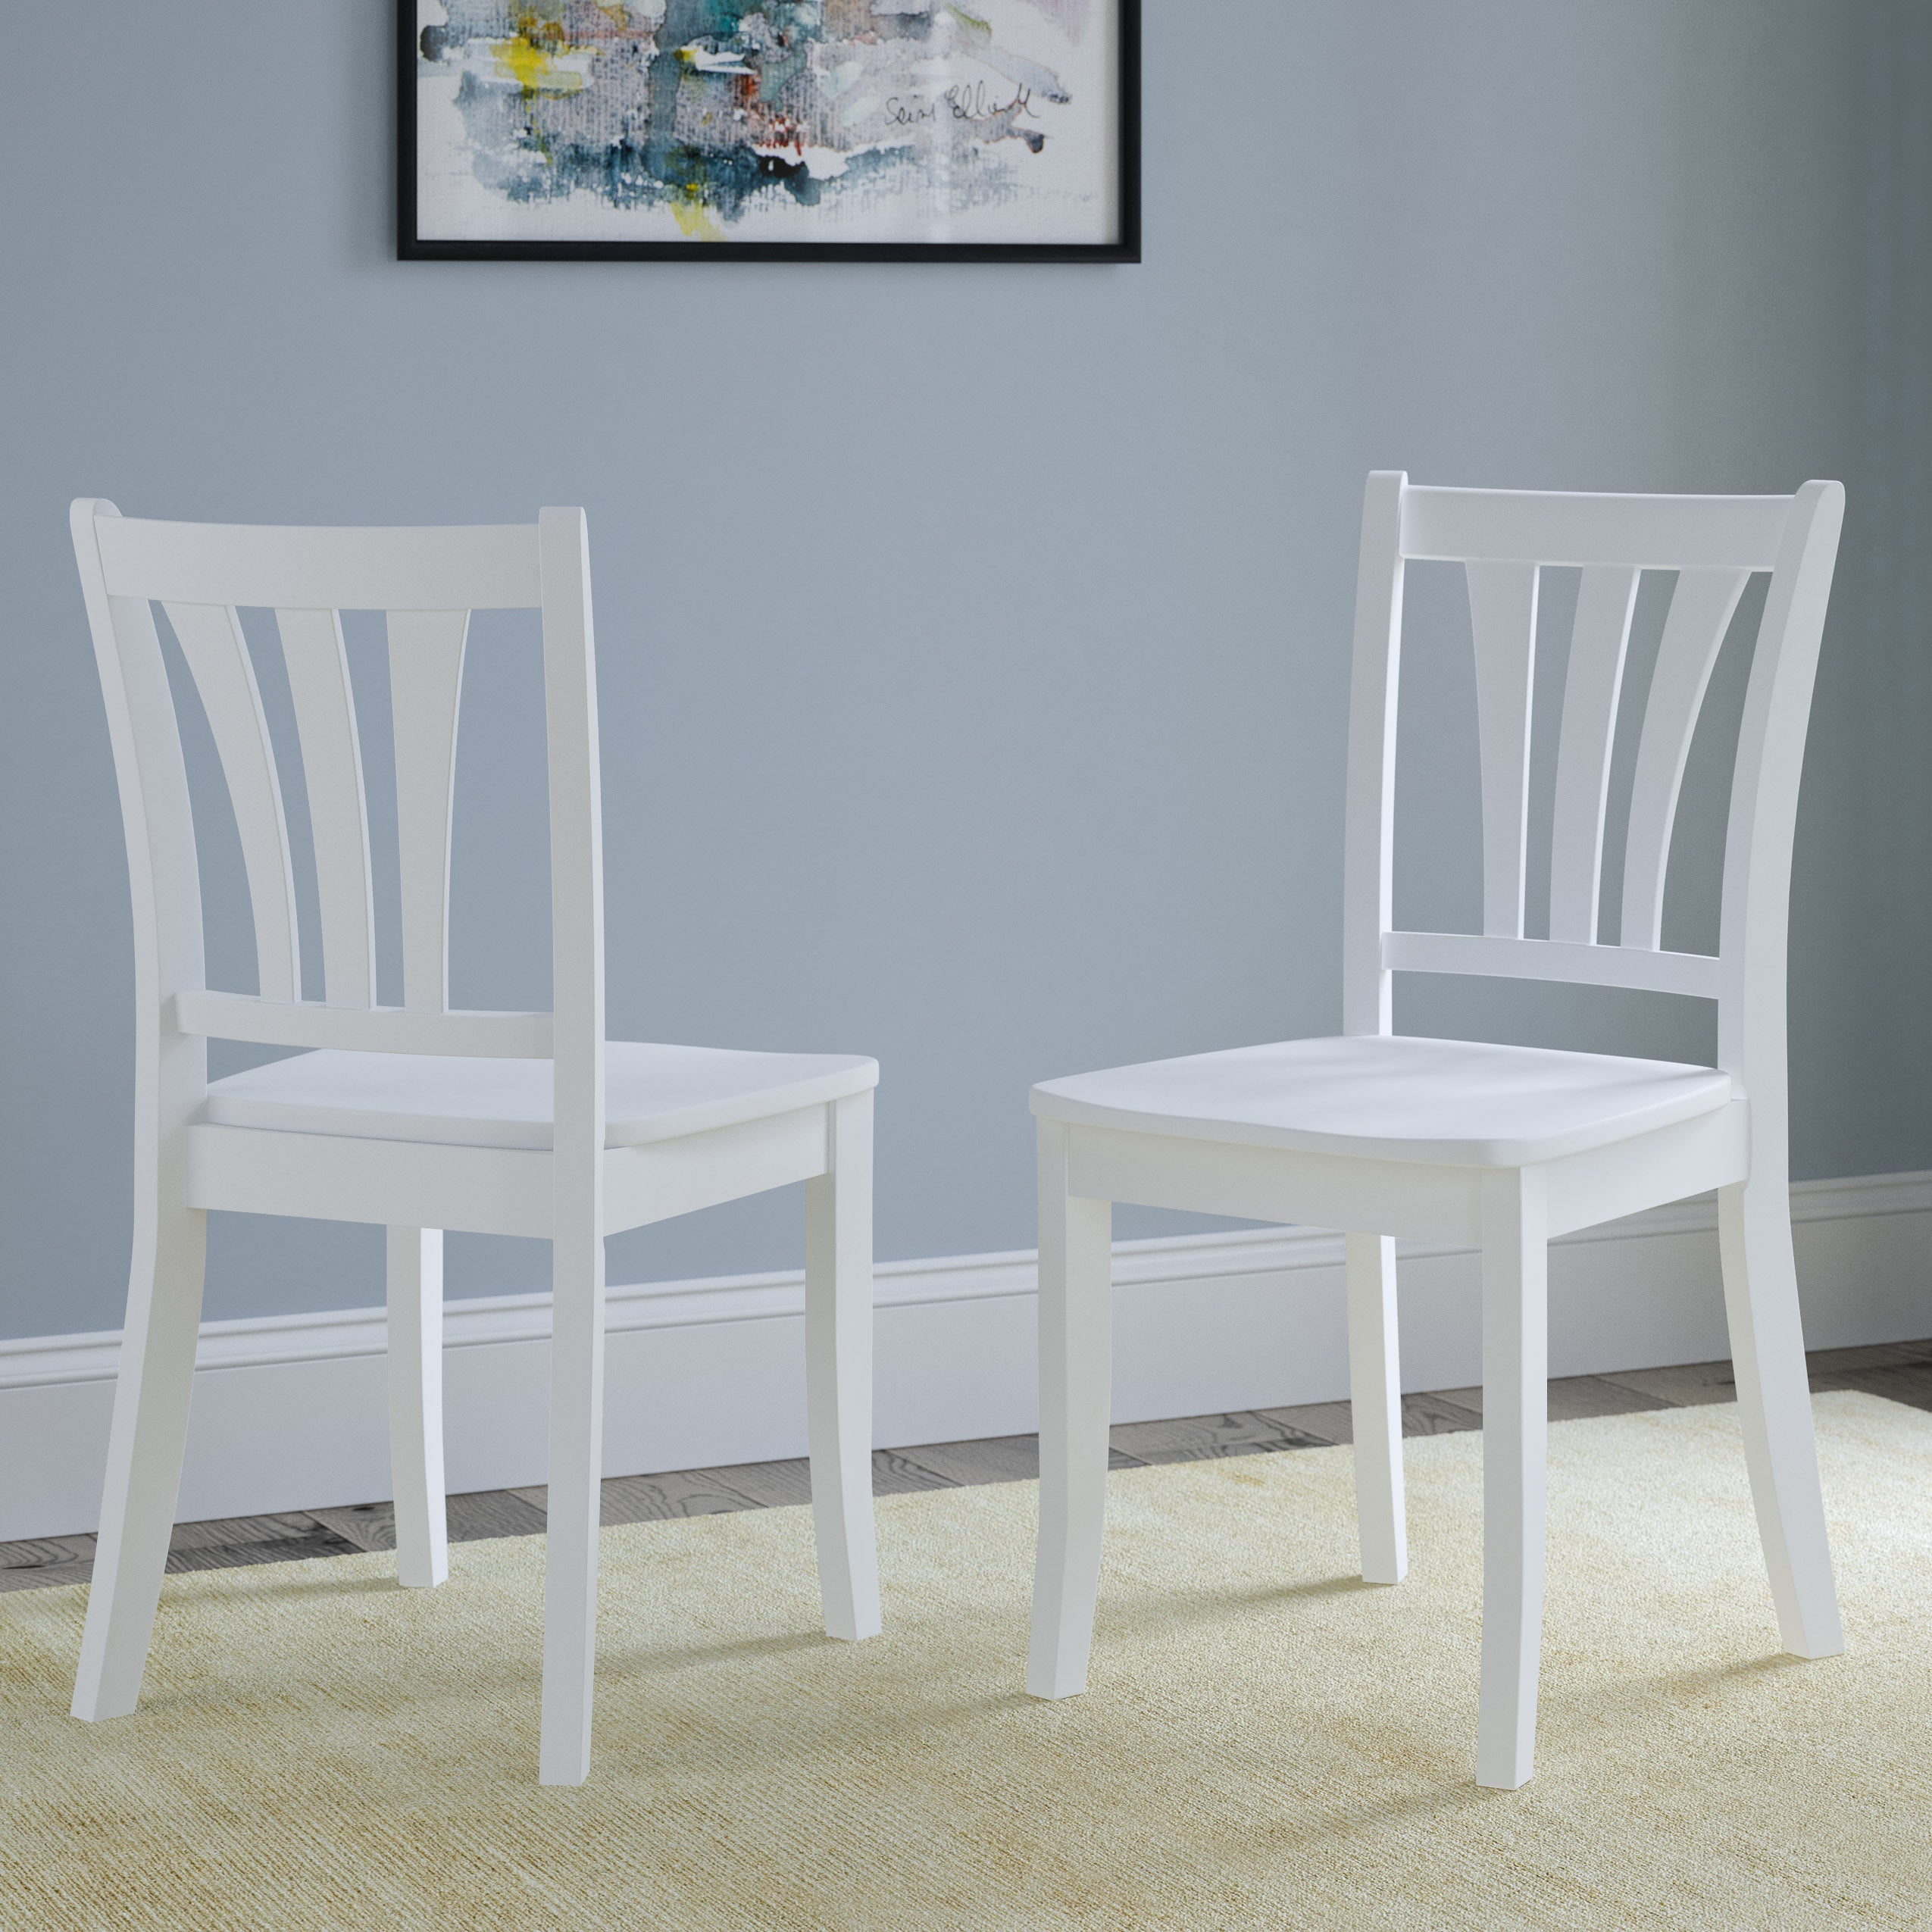 Shop corliving dillon white solid wood curved vertical slat design dining chairs set of 2 free shipping today overstock com 15438695